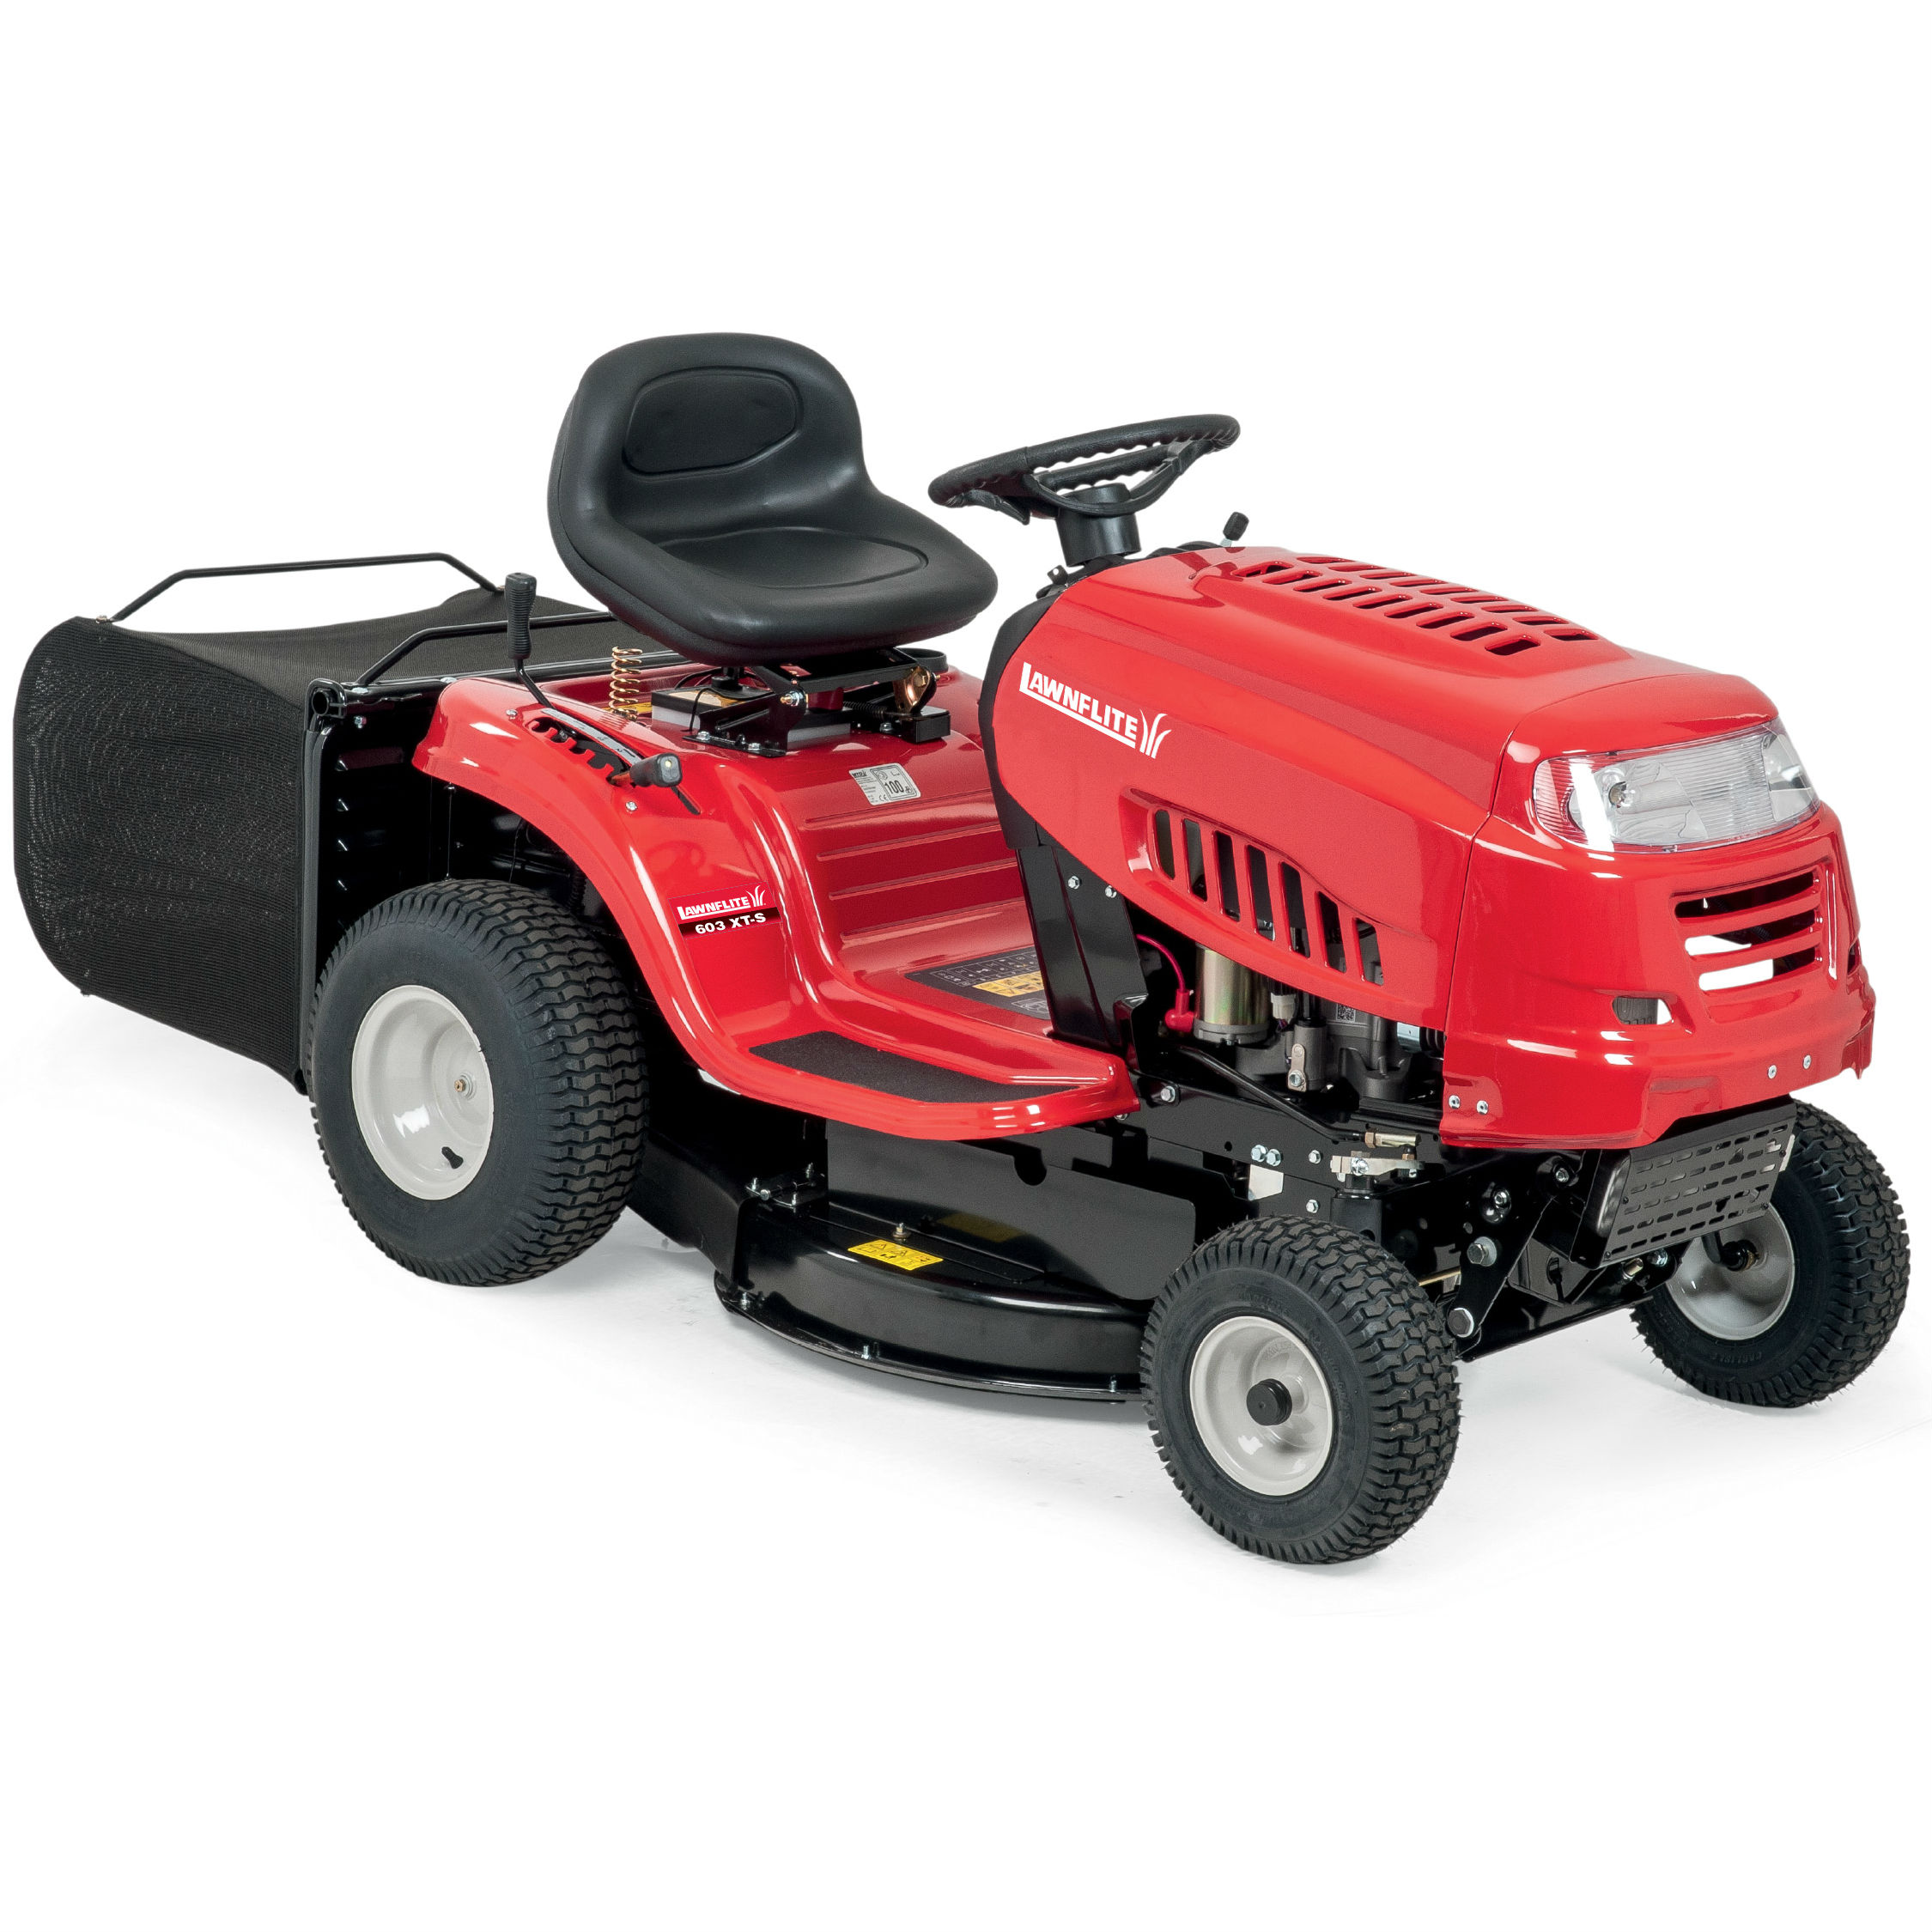 Lawnflite 603 XTS Lawn Tractor